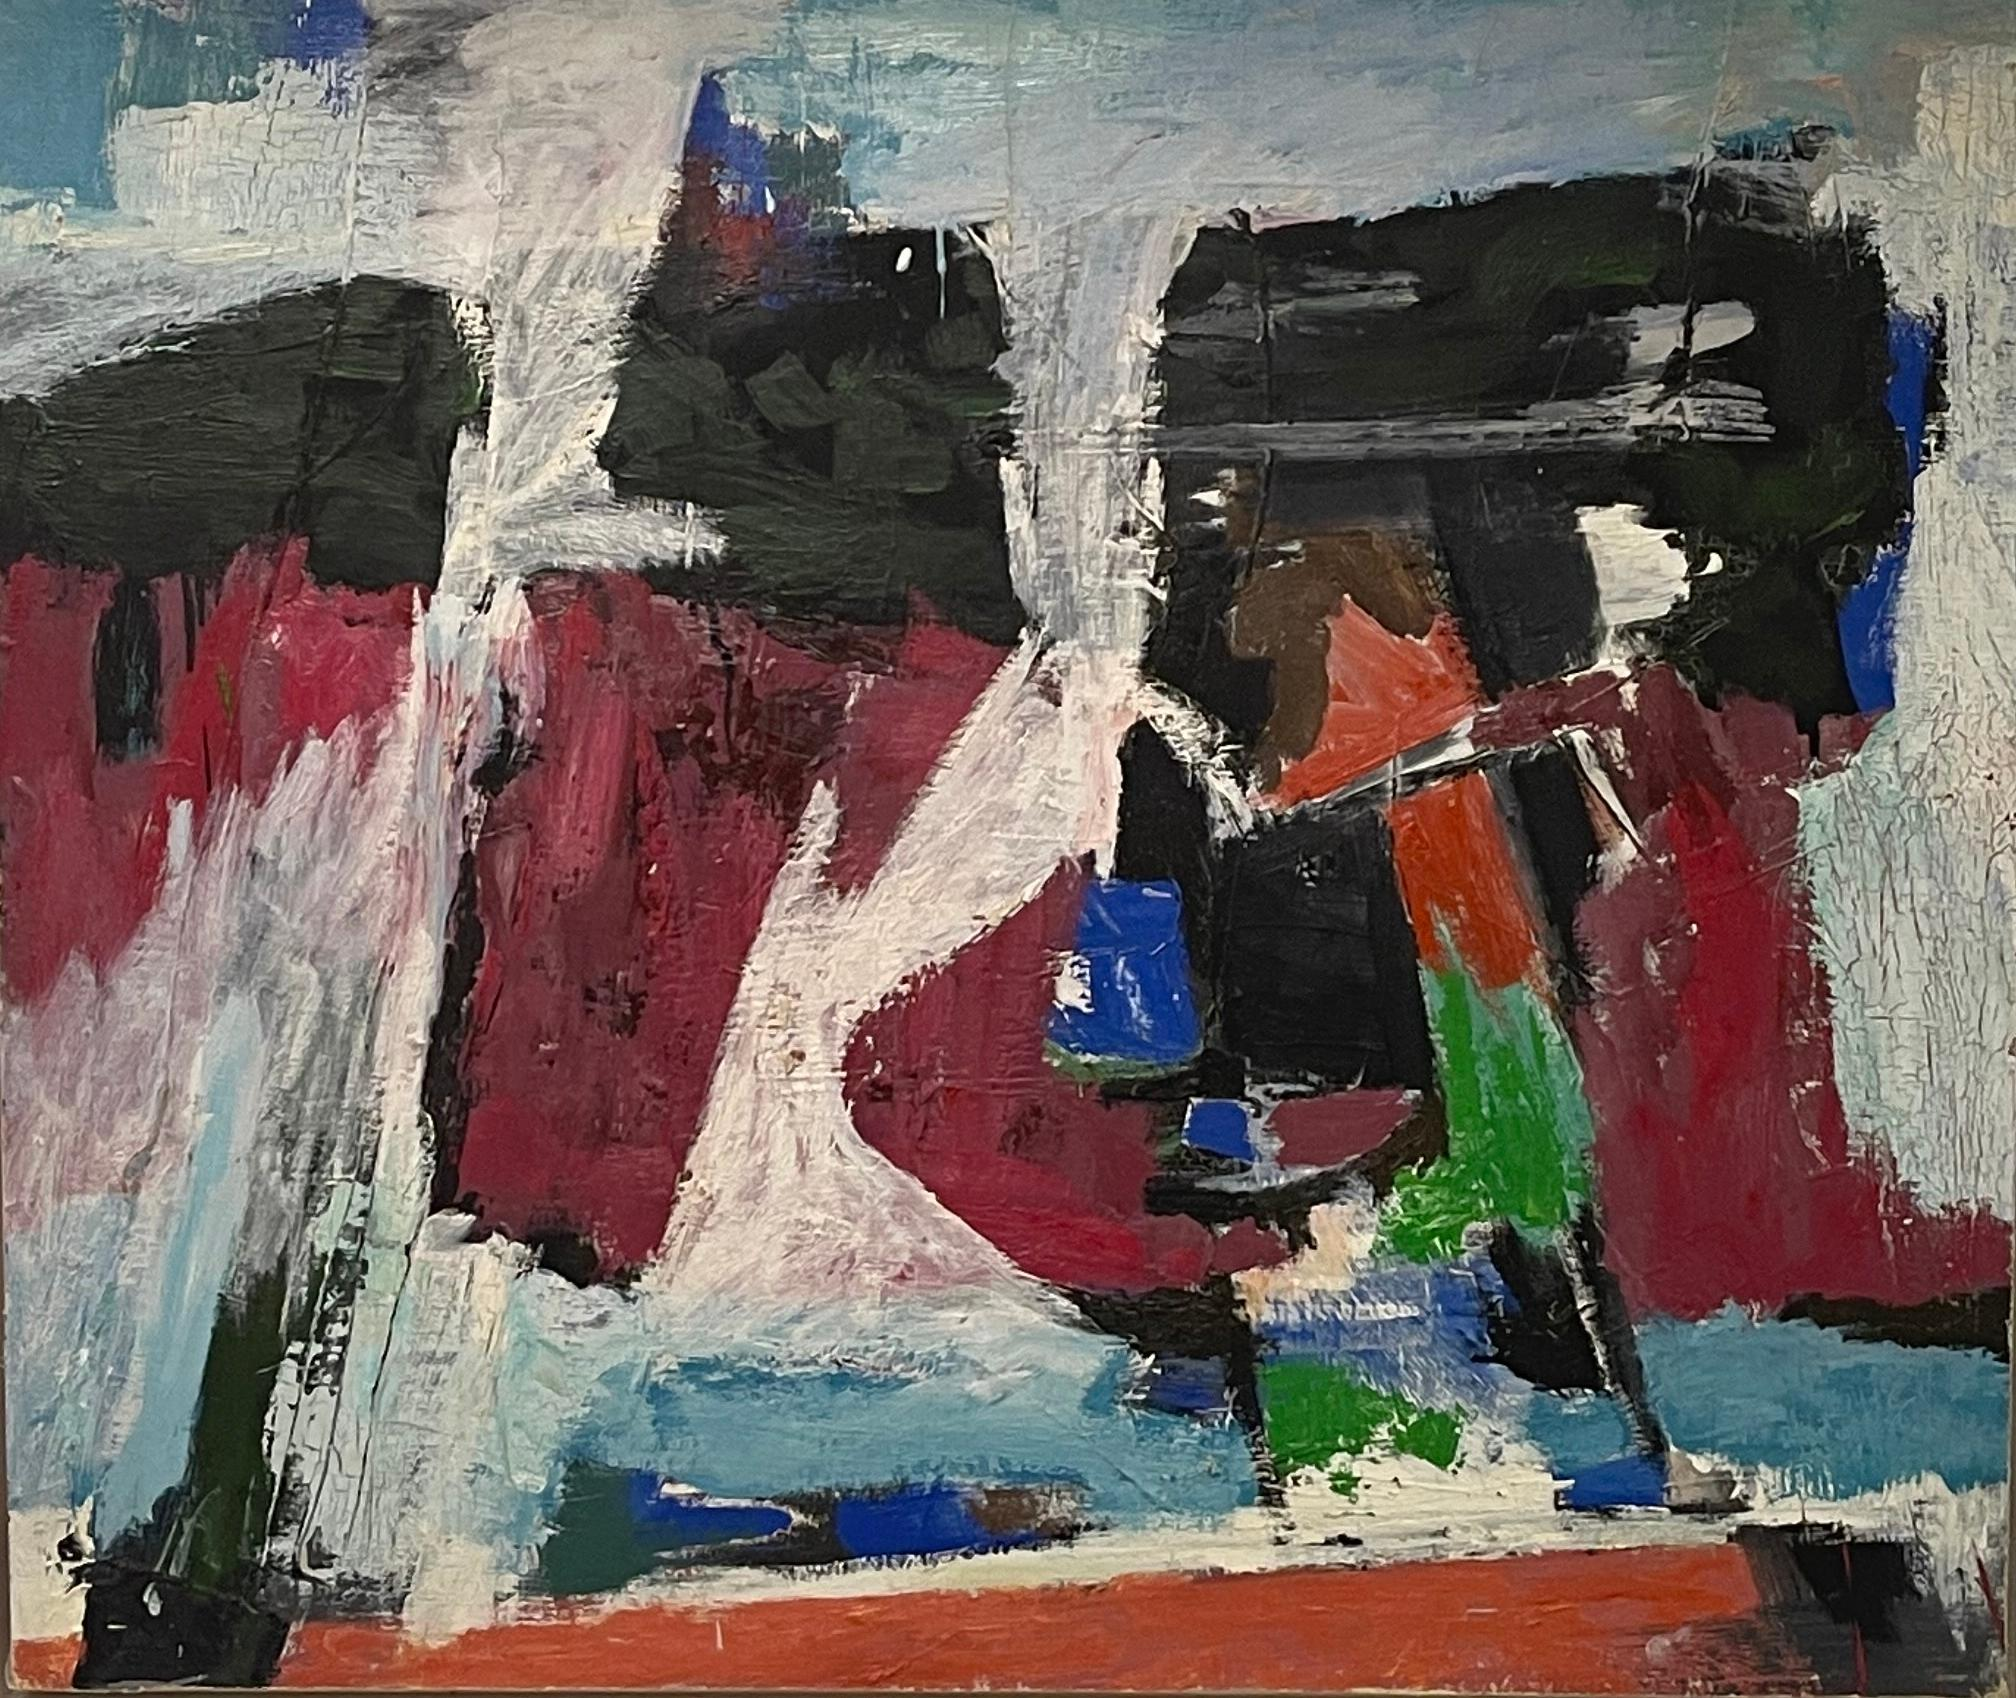 Untitled, from the Black Warrior Series